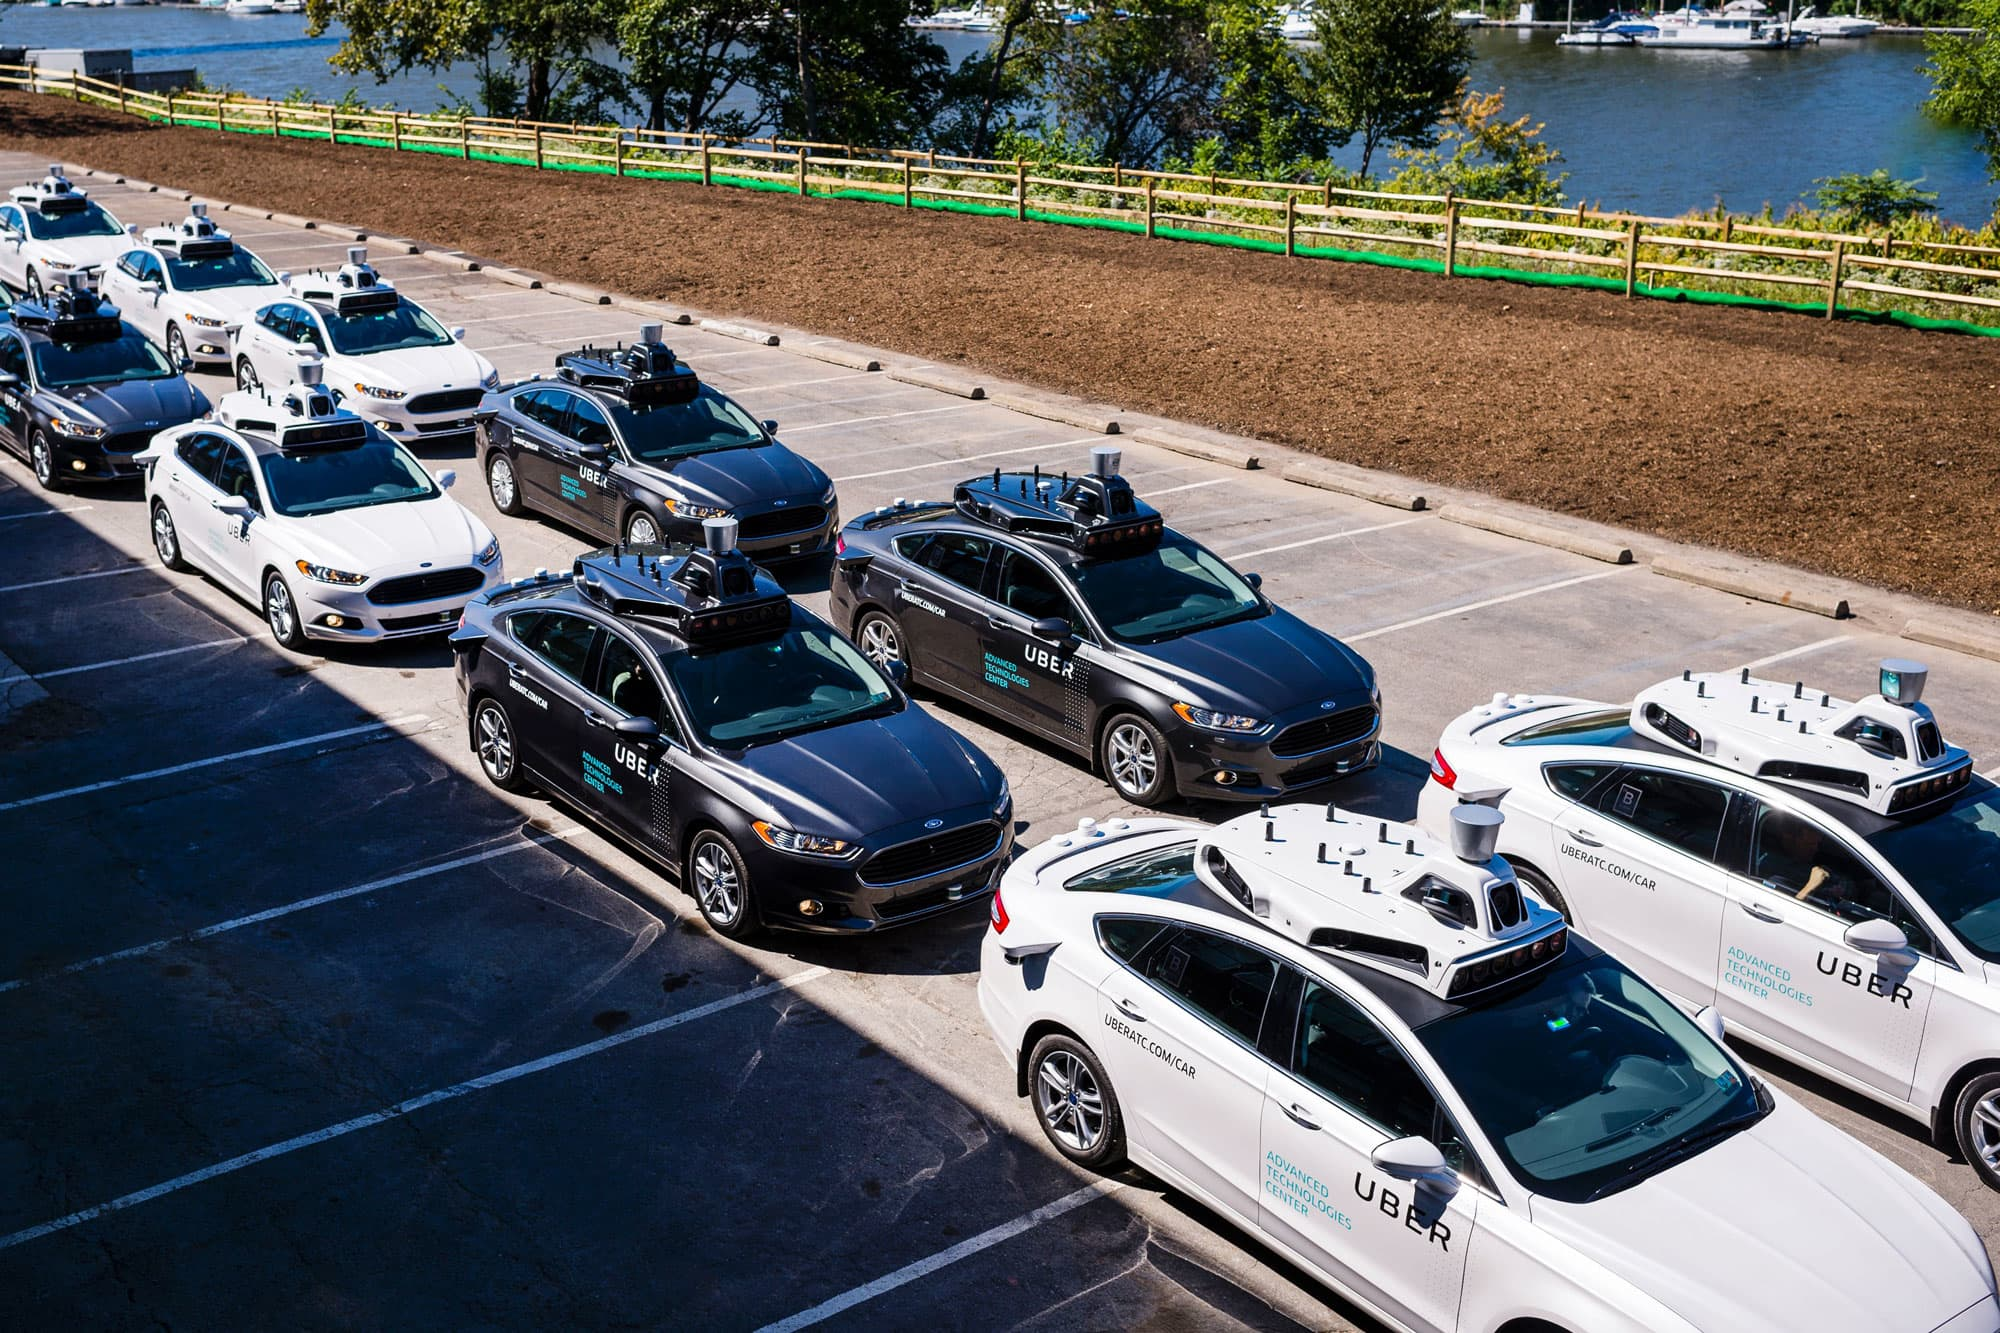 Pittsburgh's self-driving car boom means $200,000 pay packages for